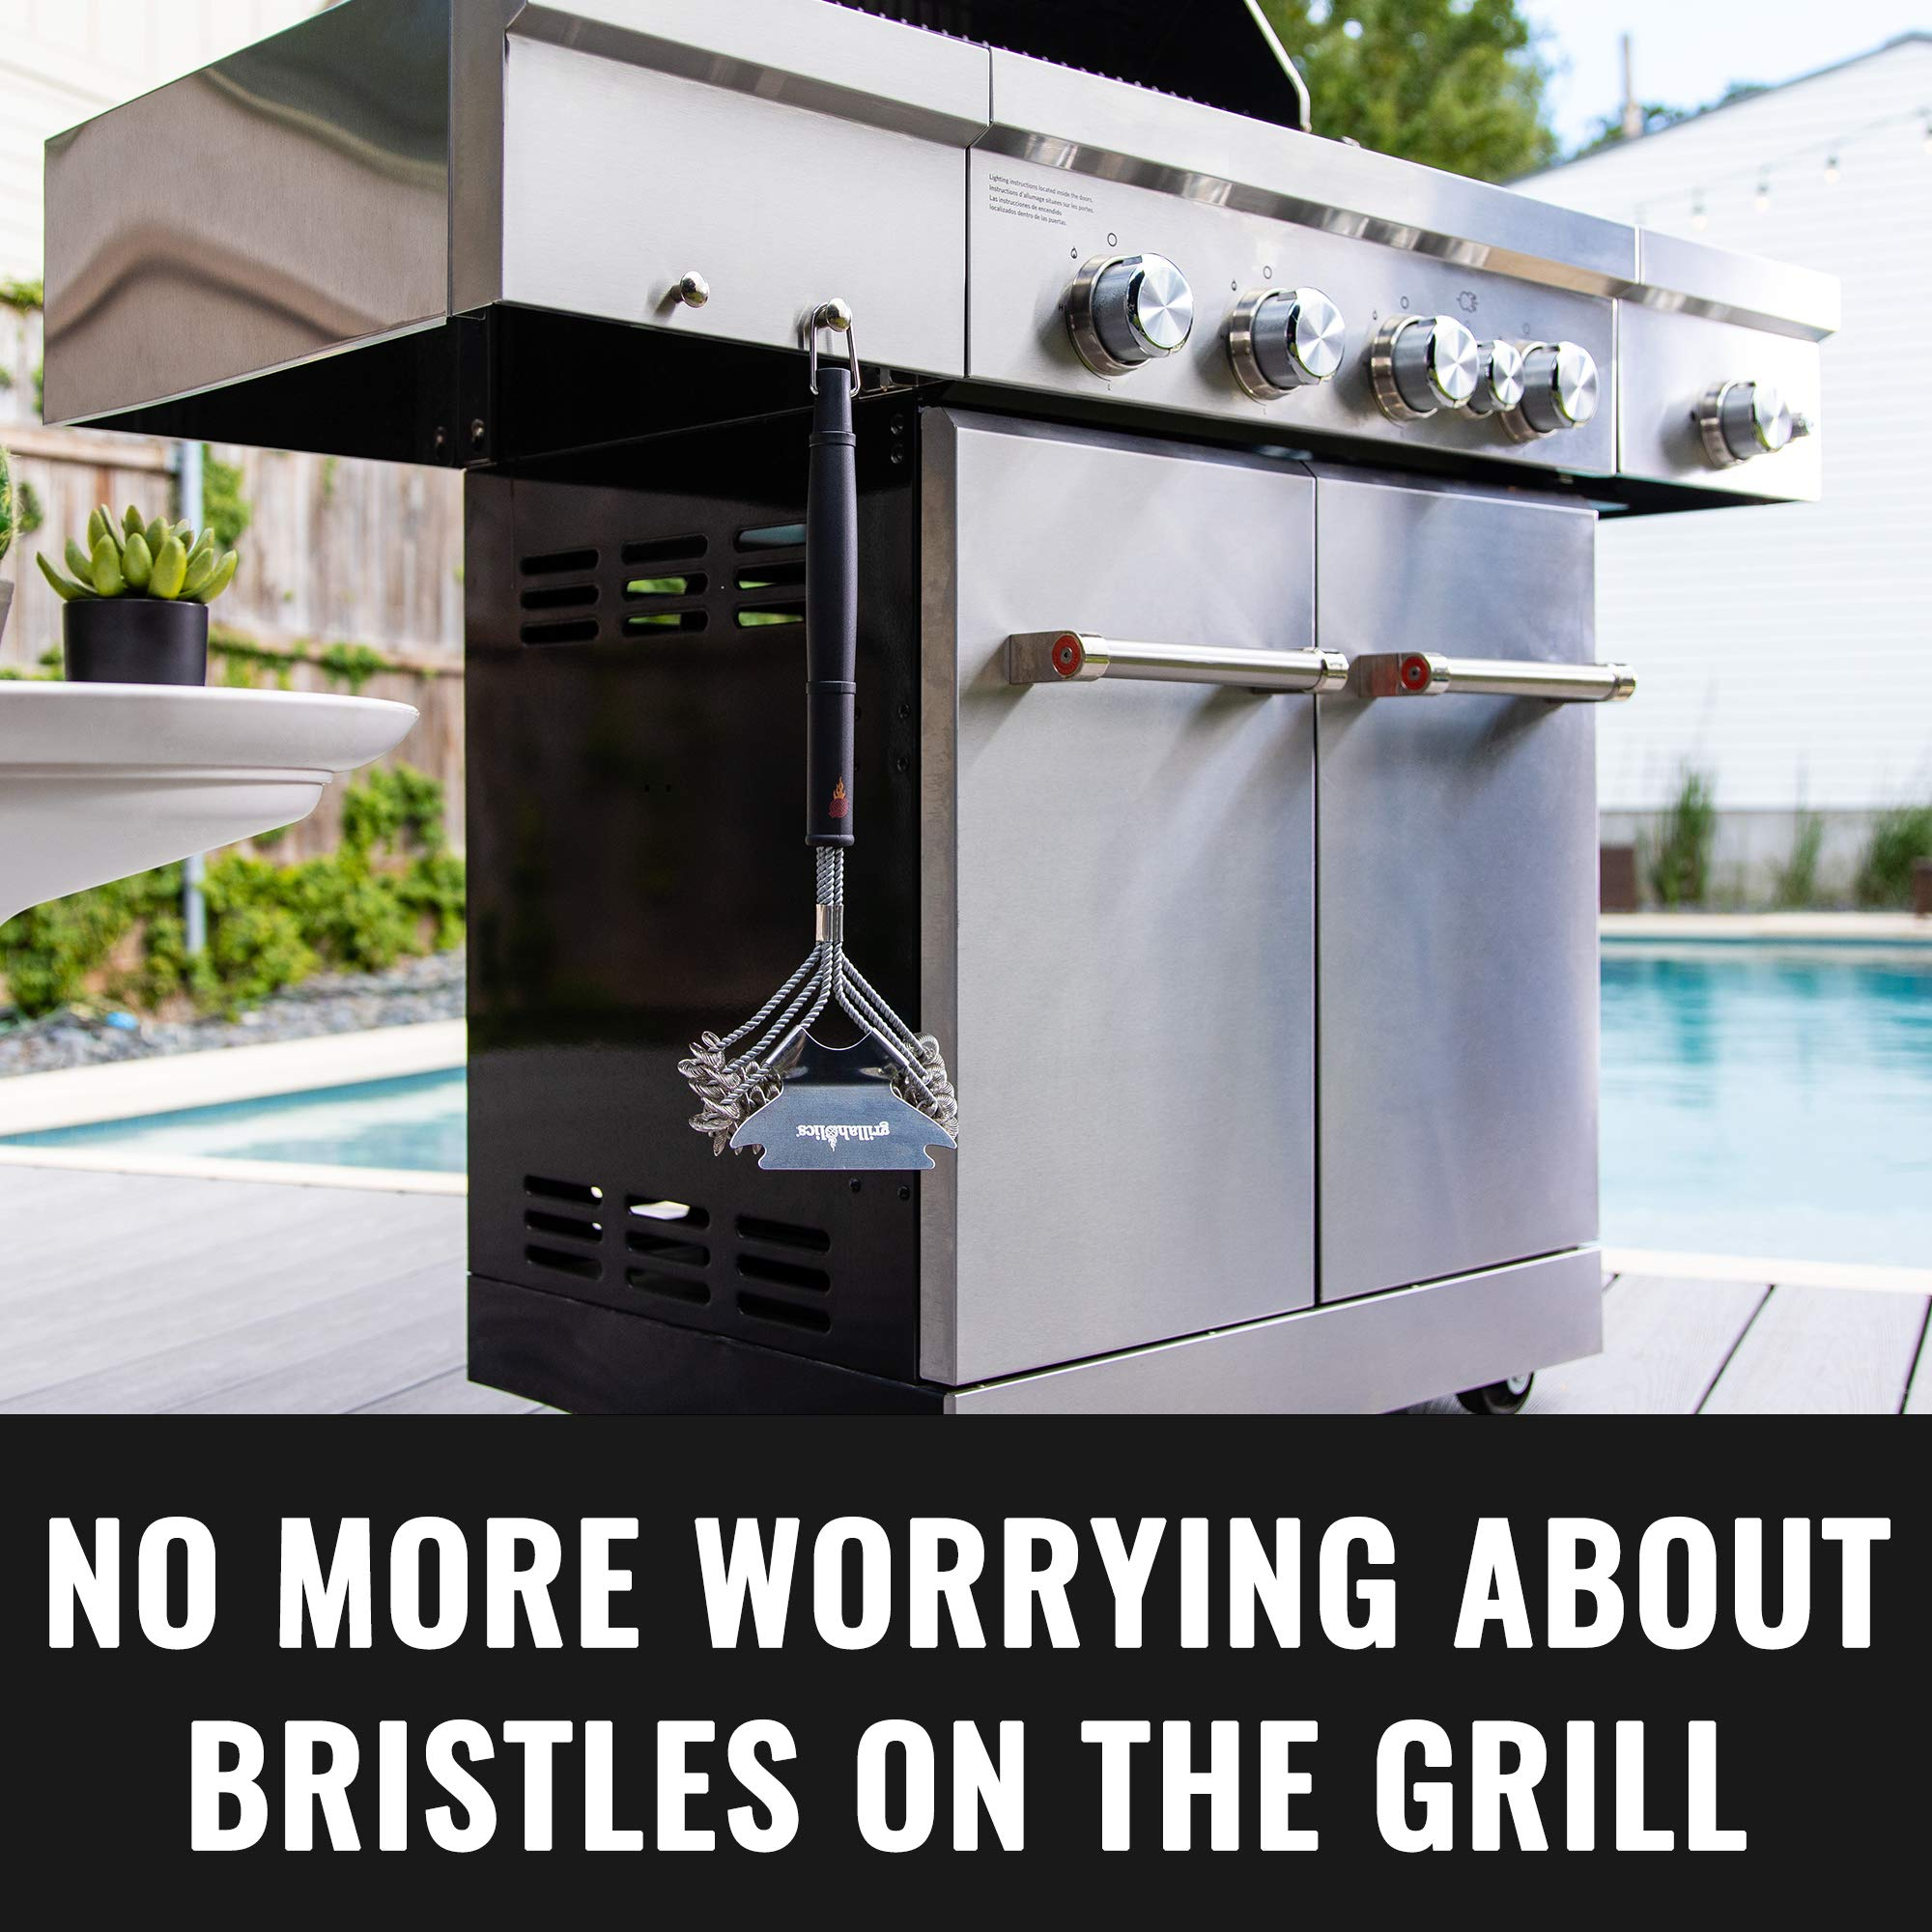 Grillaholics Grill Brush Bristle Free - Safe Grill Cleaning with No Wire Bristles - Professional Heavy Duty Stainless Steel Coils and Scraper - Lifetime Manufacturers Warranty by Grillaholics (Image #8)